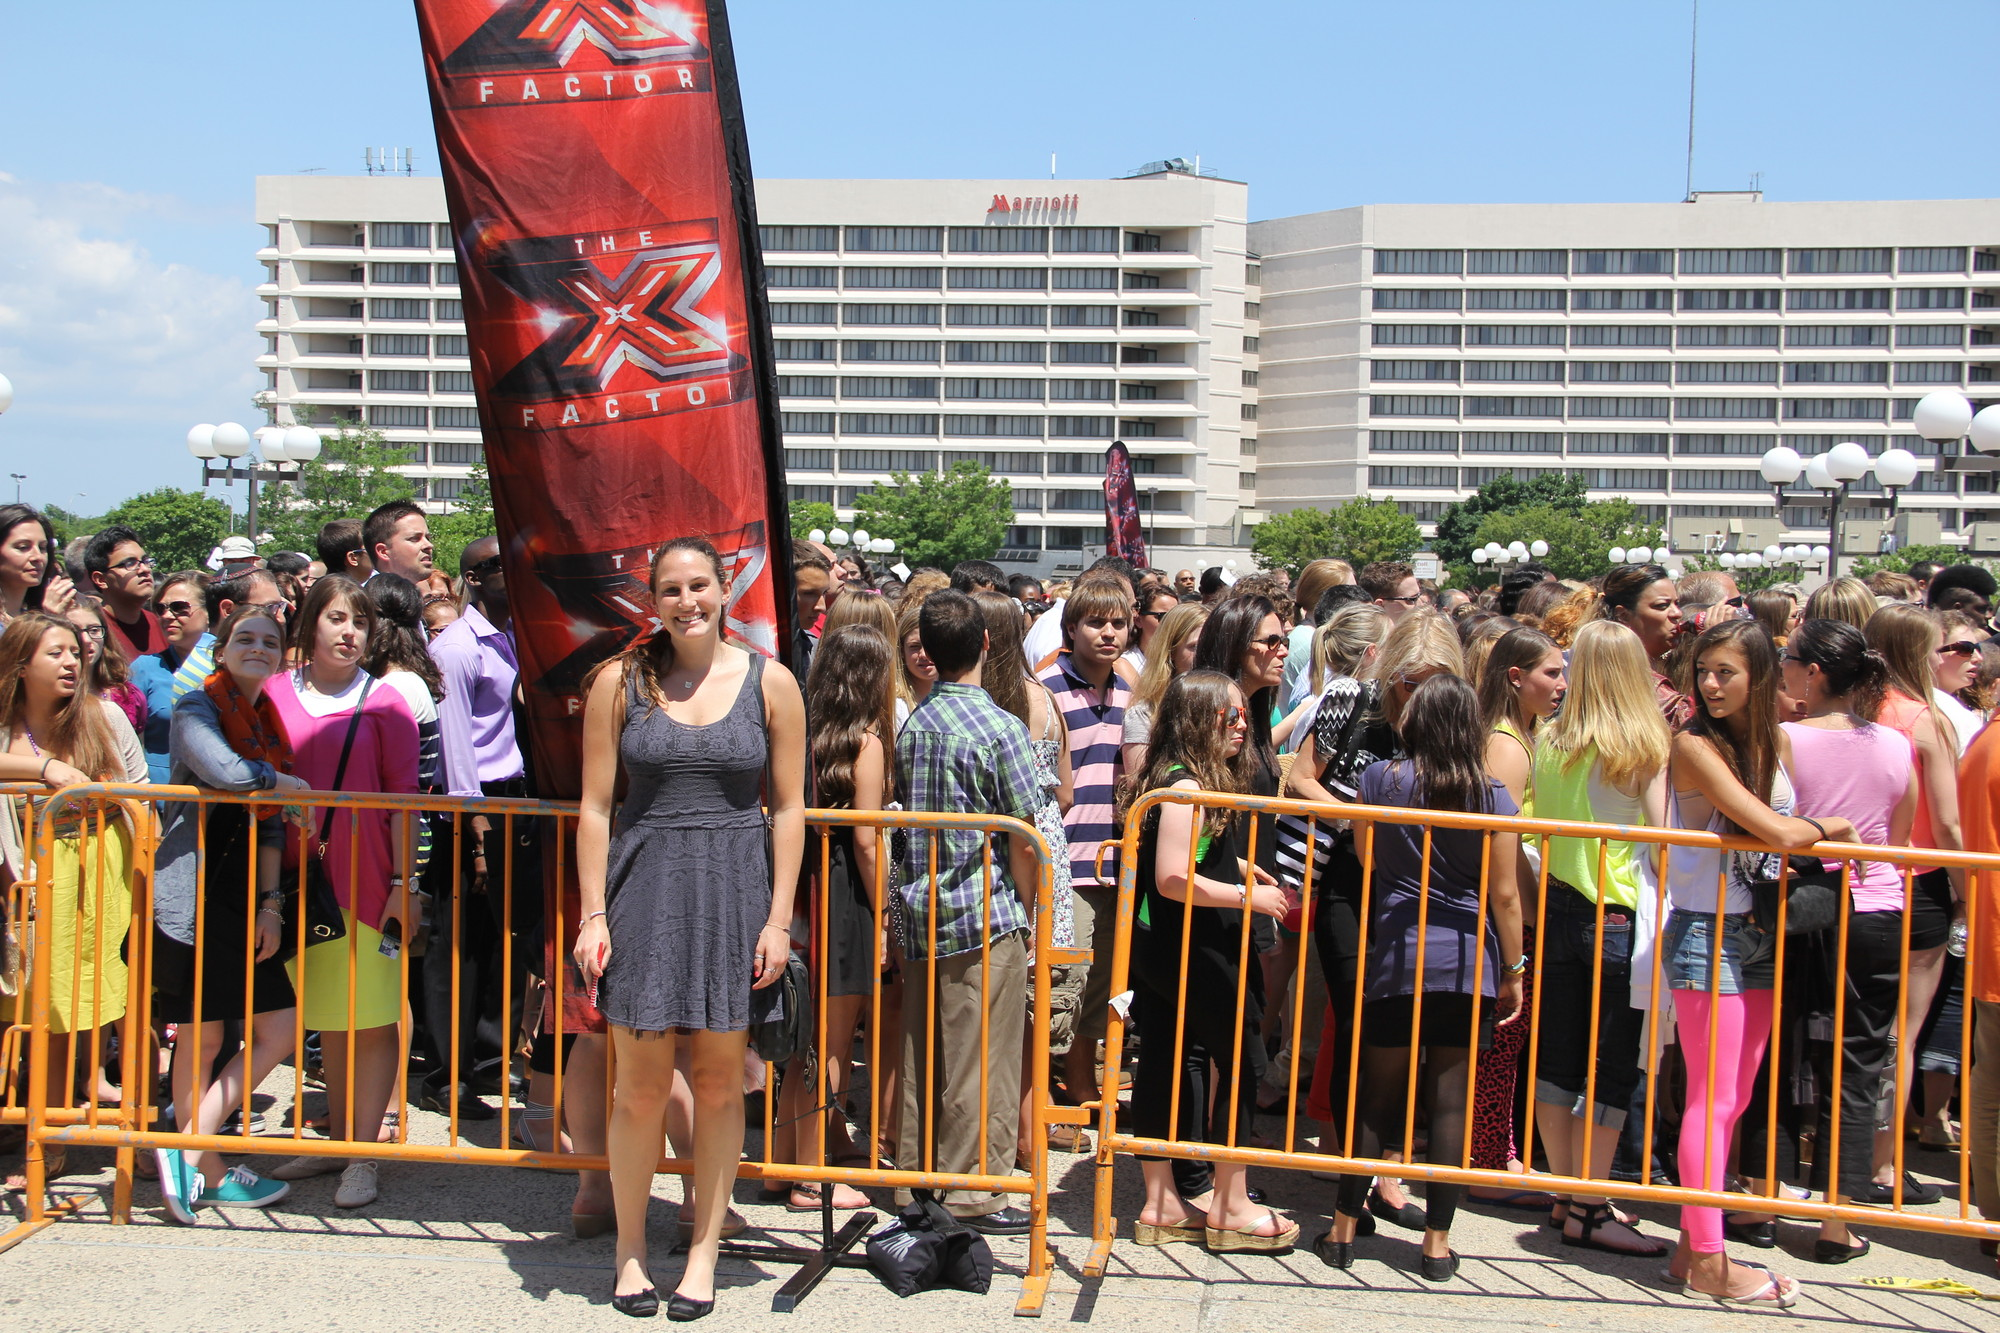 Long Island Herald intern Jess Rosen, 21, spent the day at the Nassau Coliseum in Uniondale to view a live recording of The X Factor. Behind her, thousands of fans of the Fox show filled the arena.